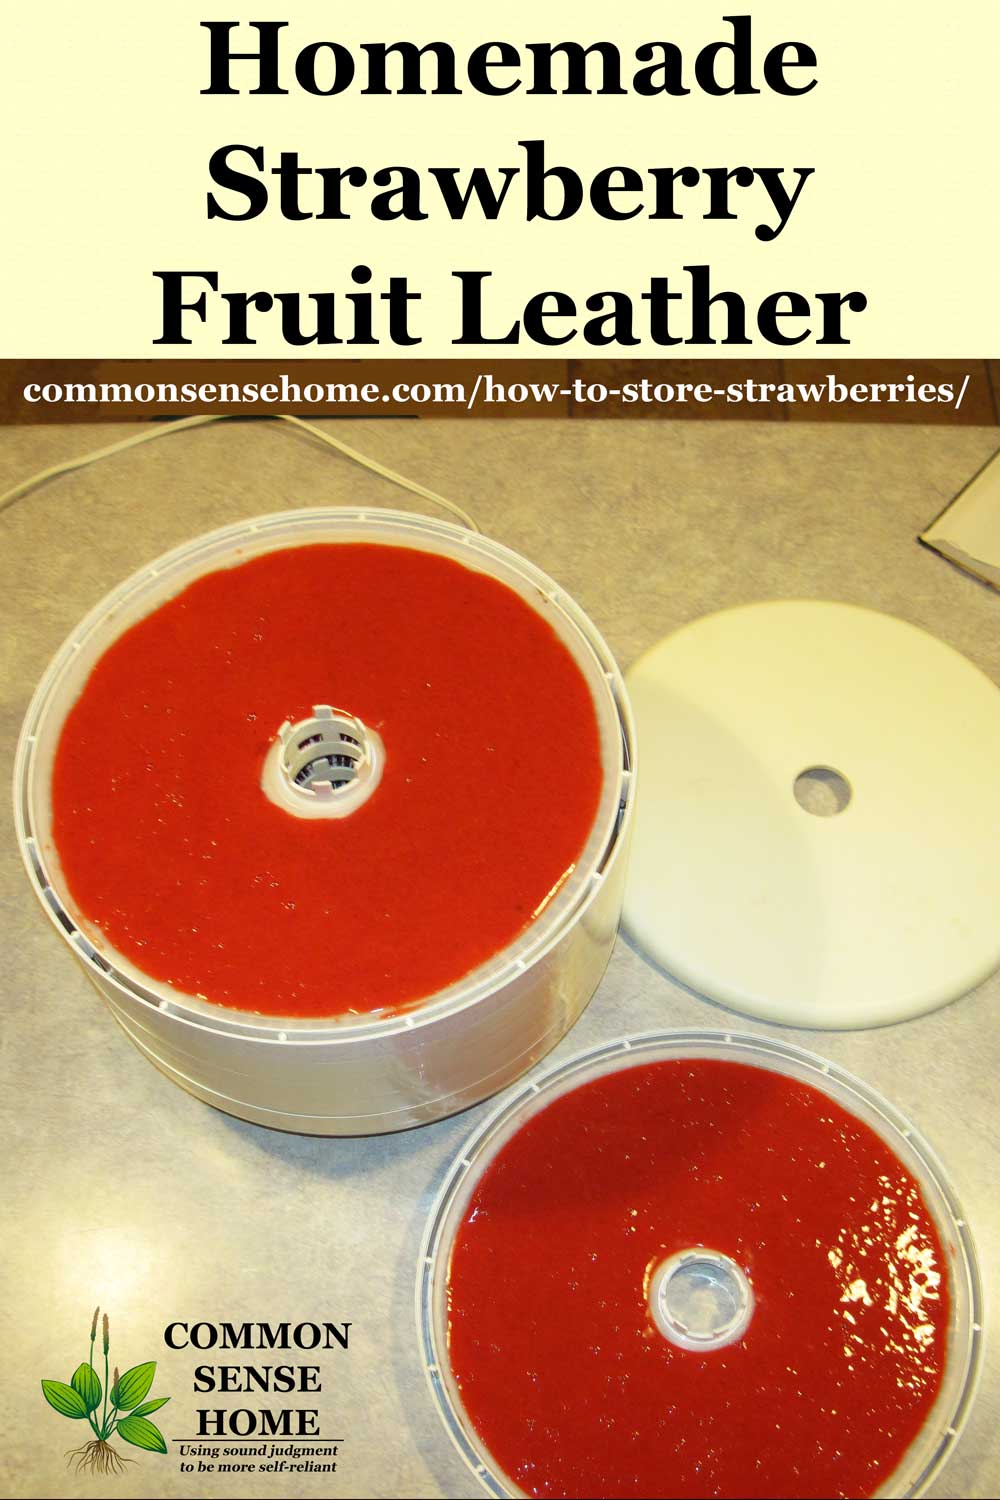 strawberry puree in dehydrator to make strawberry fruit leather